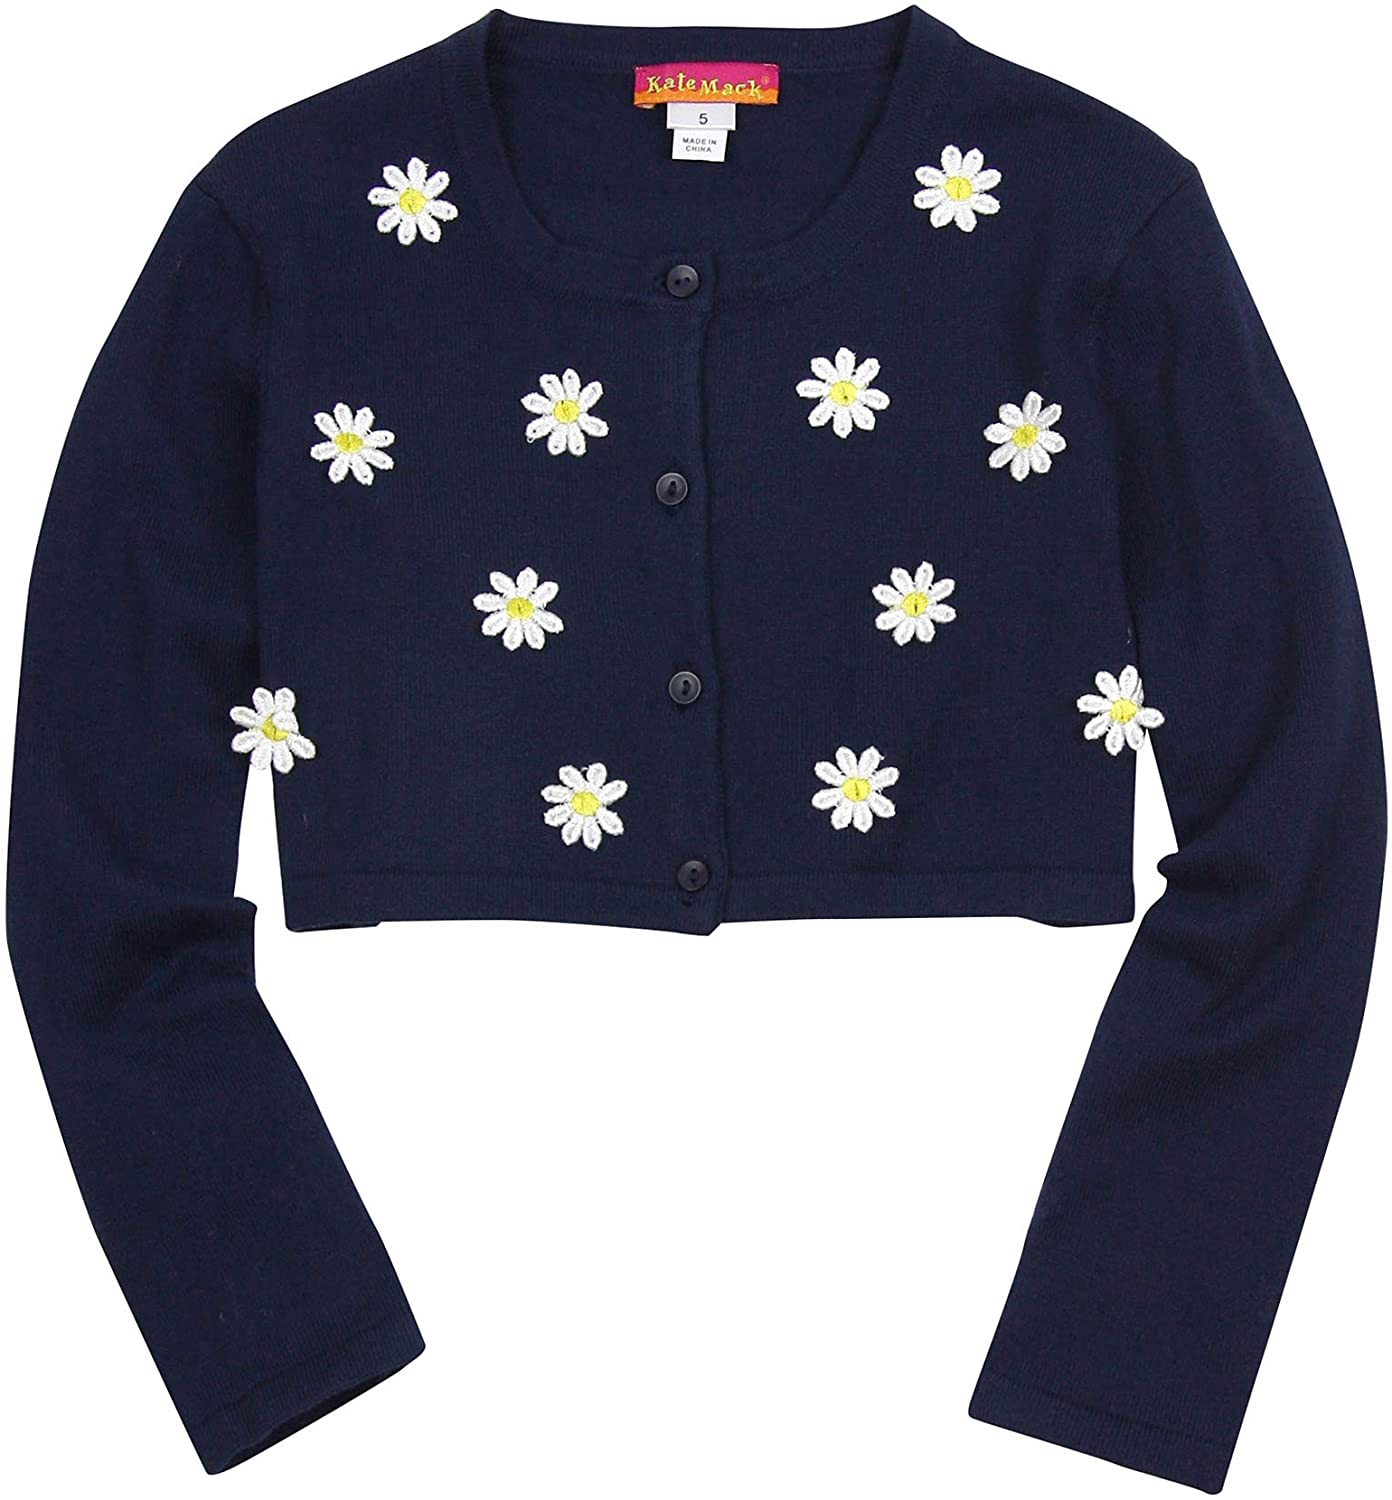 Kate Mack Little Girls' Daisy Chain Knit Cardigan, Sizes 3-6 (6) Navy